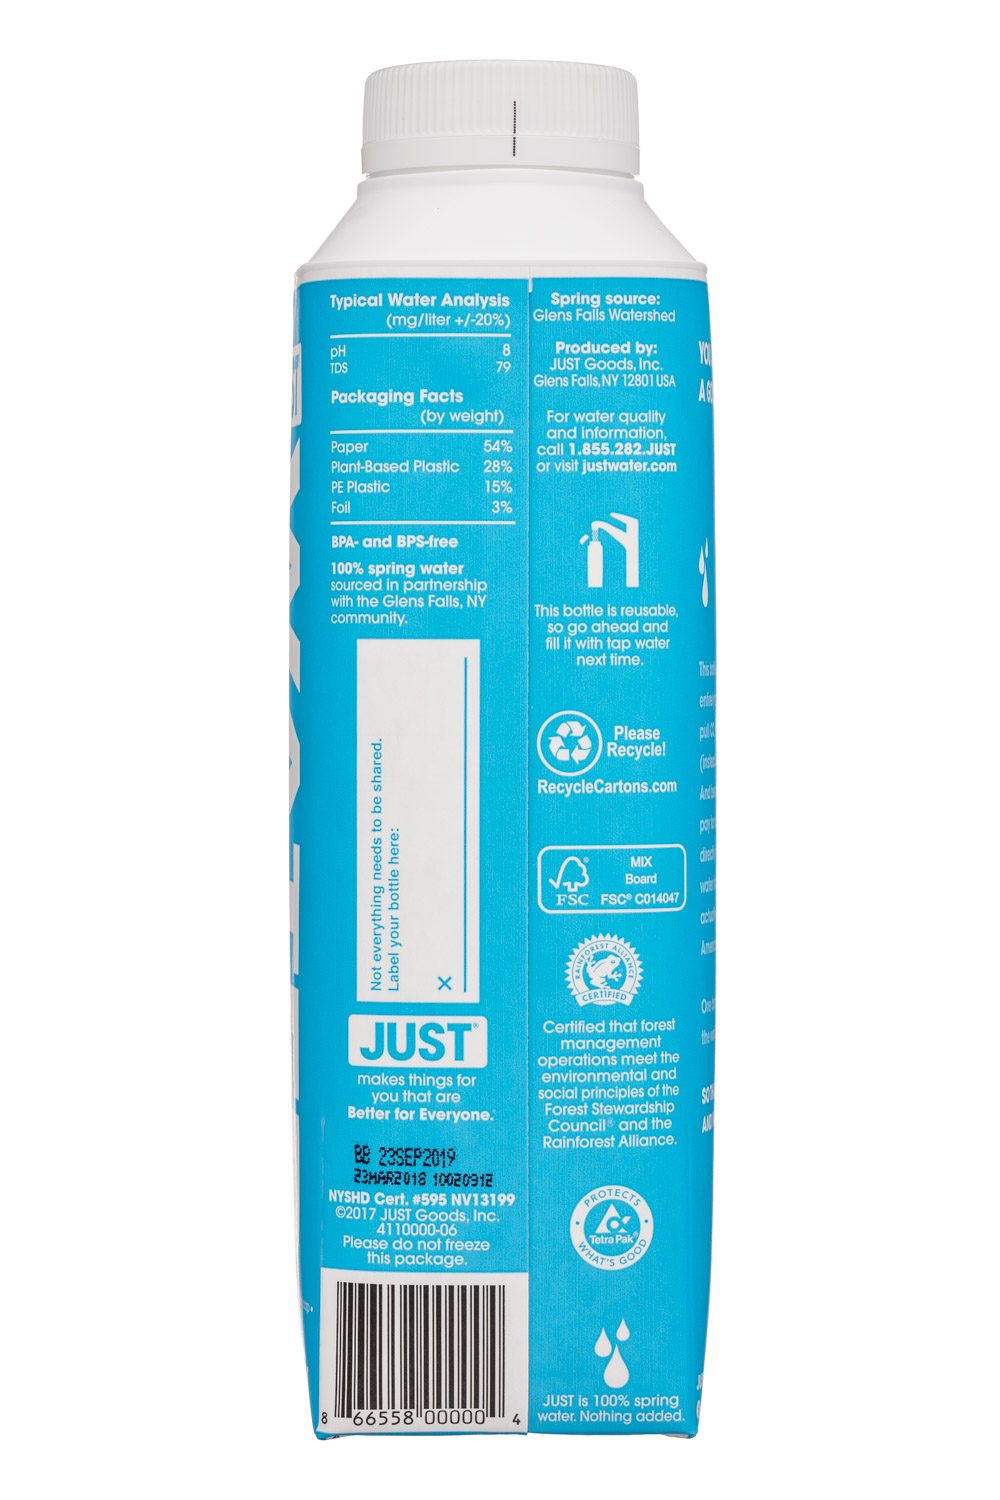 Just Water: JustWater-17oz-Facts